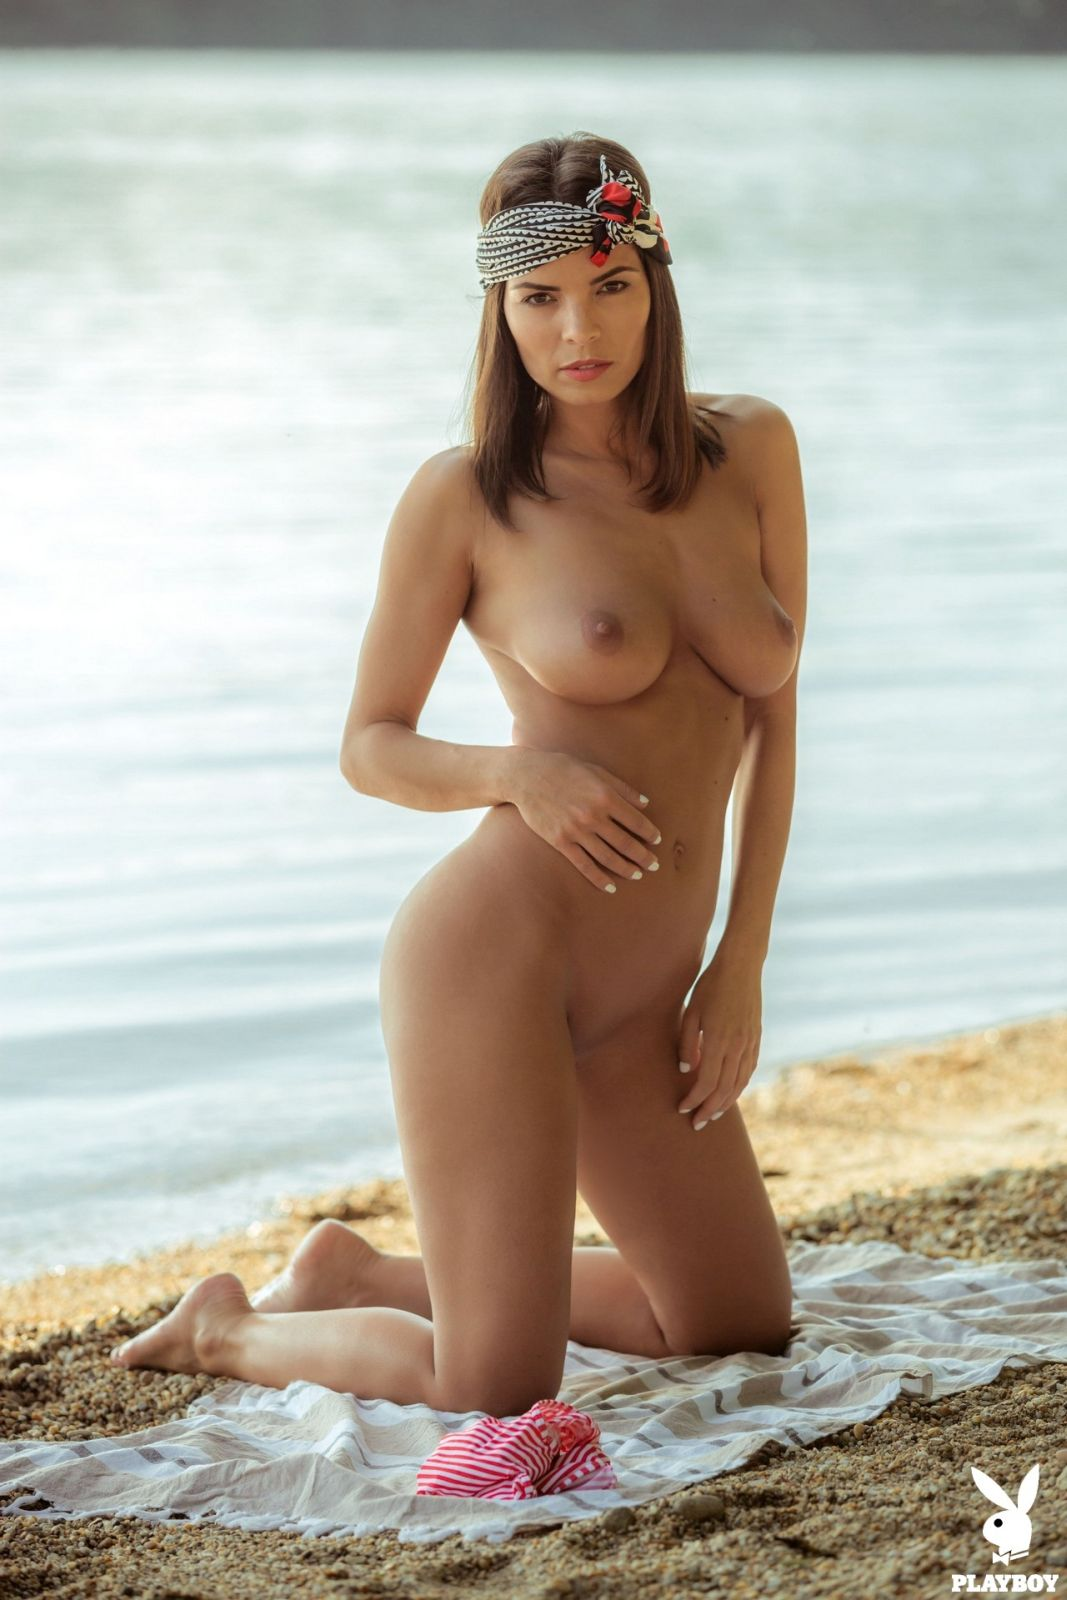 Girls playboy nude natural all